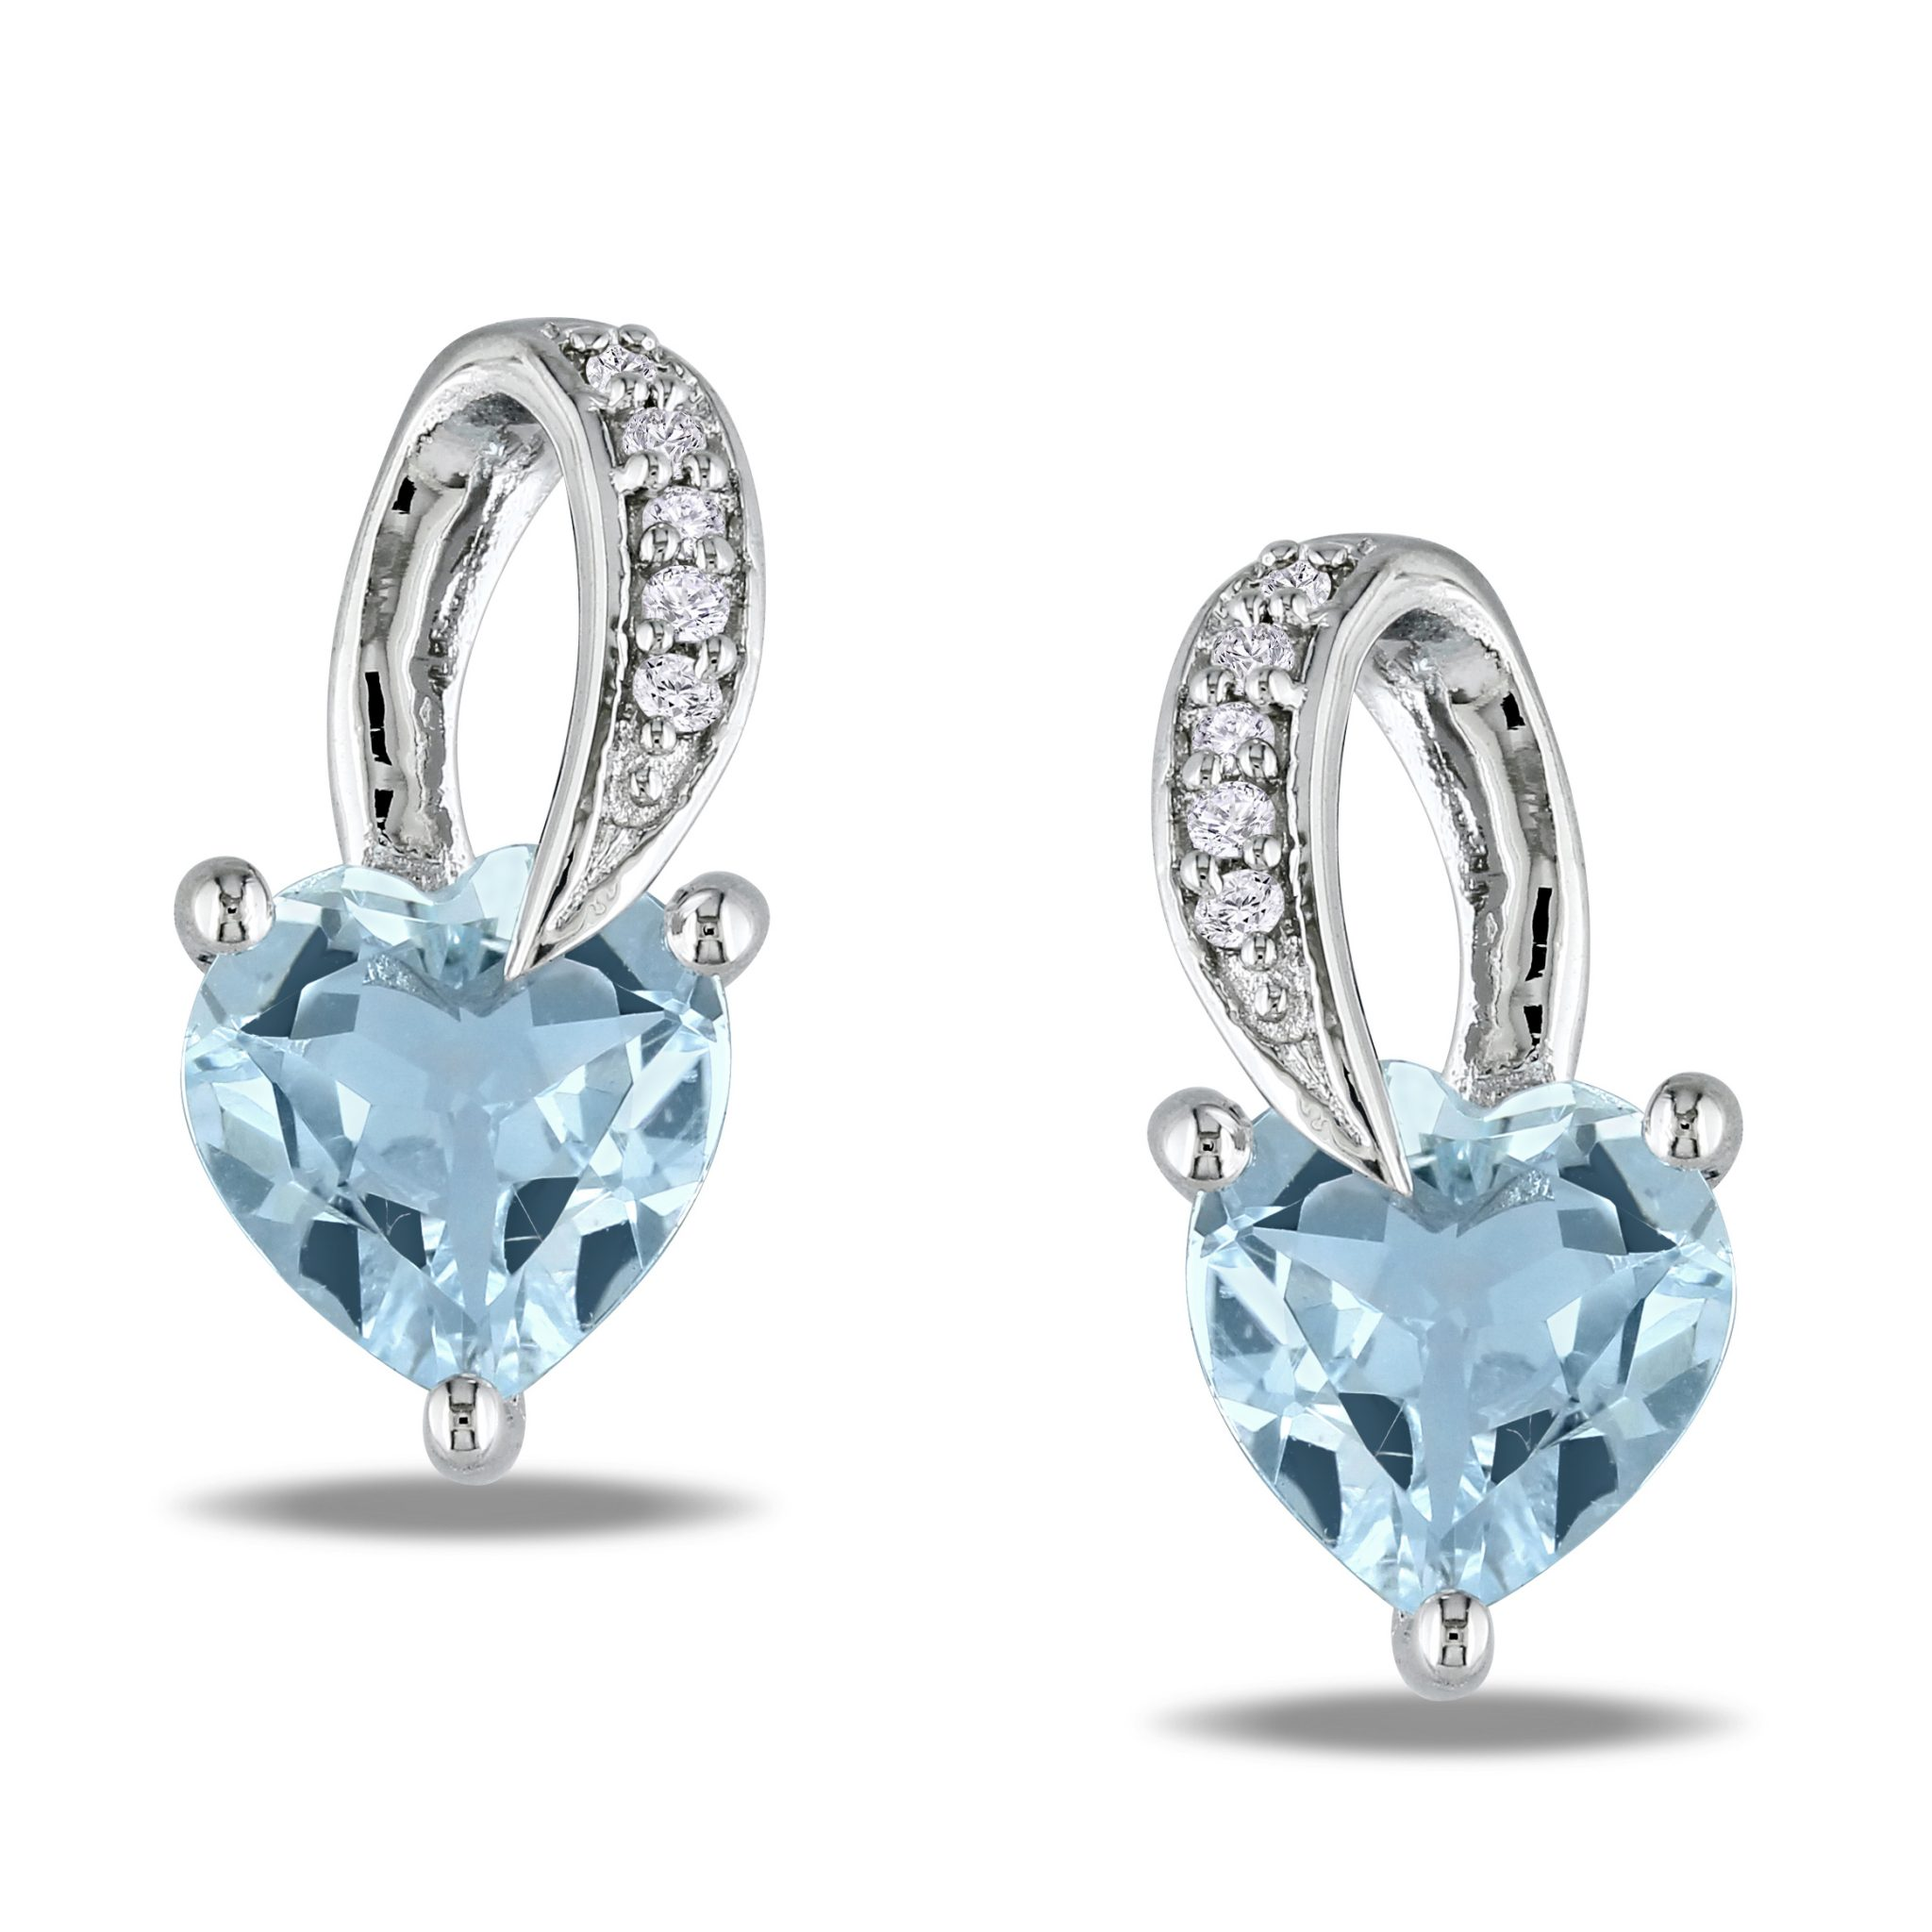 Miadora-Sterling-Silver-Aquamarine-and-Diamond-Heart-Earrings-H-I-I3-P14769110